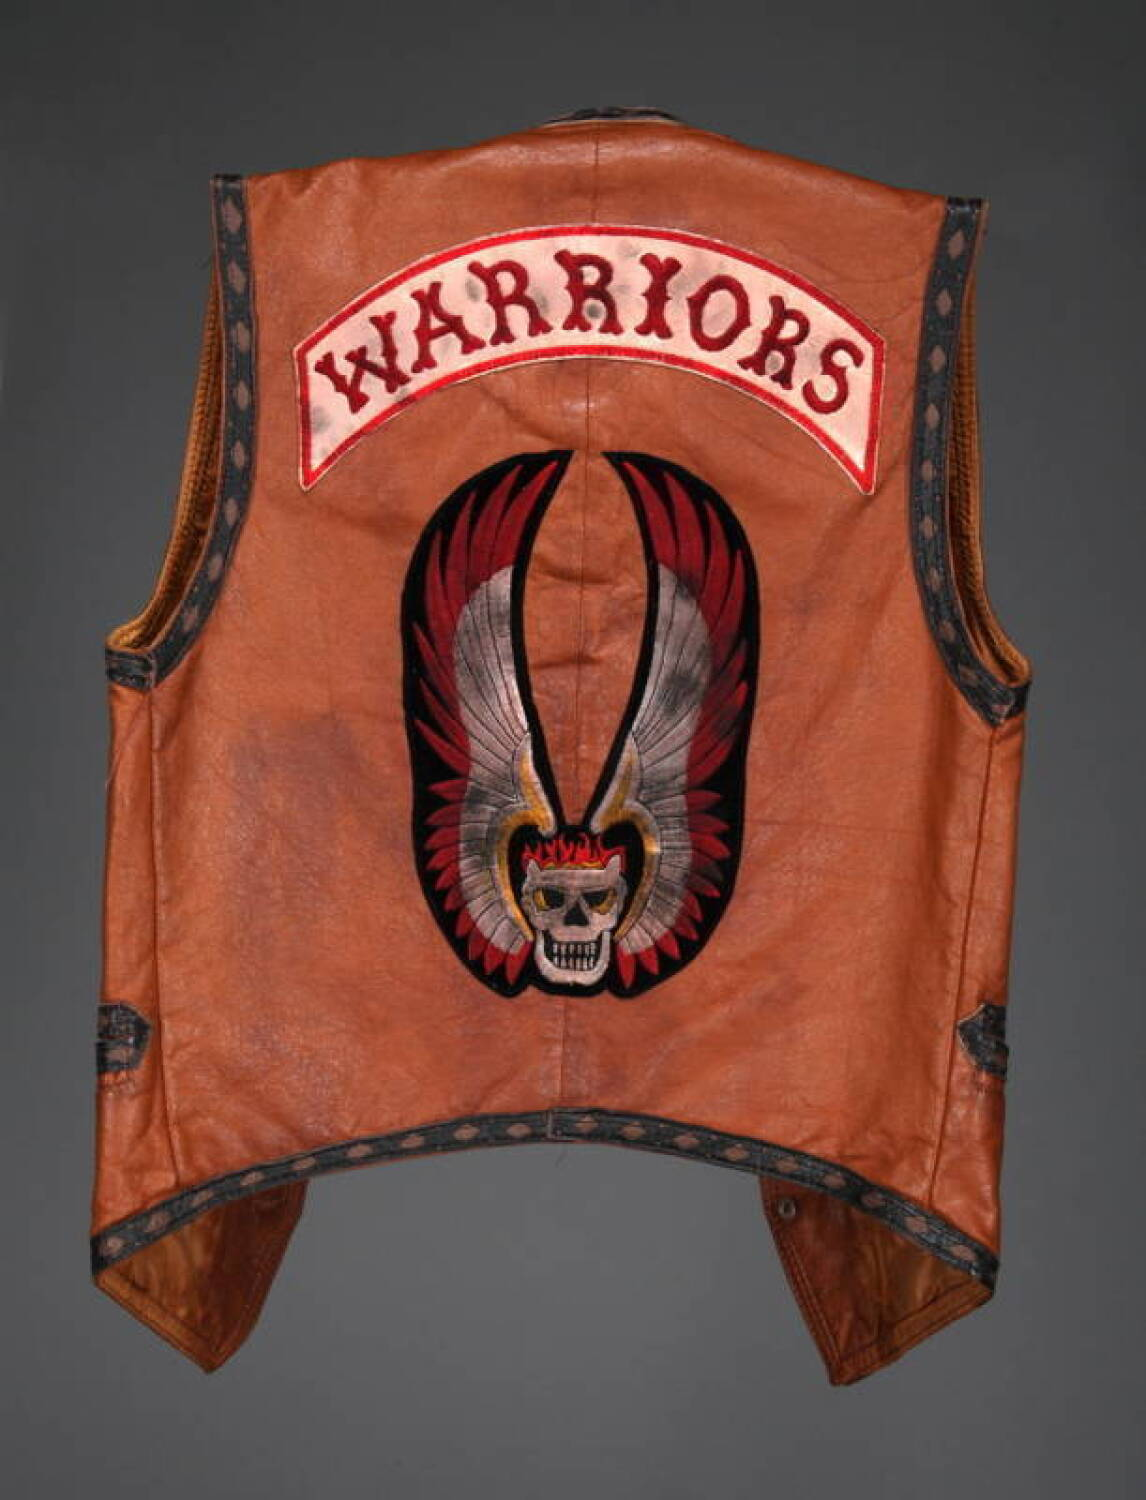 Marcelino Sanchez Quot The Warriors Quot Vest Current Price 5000